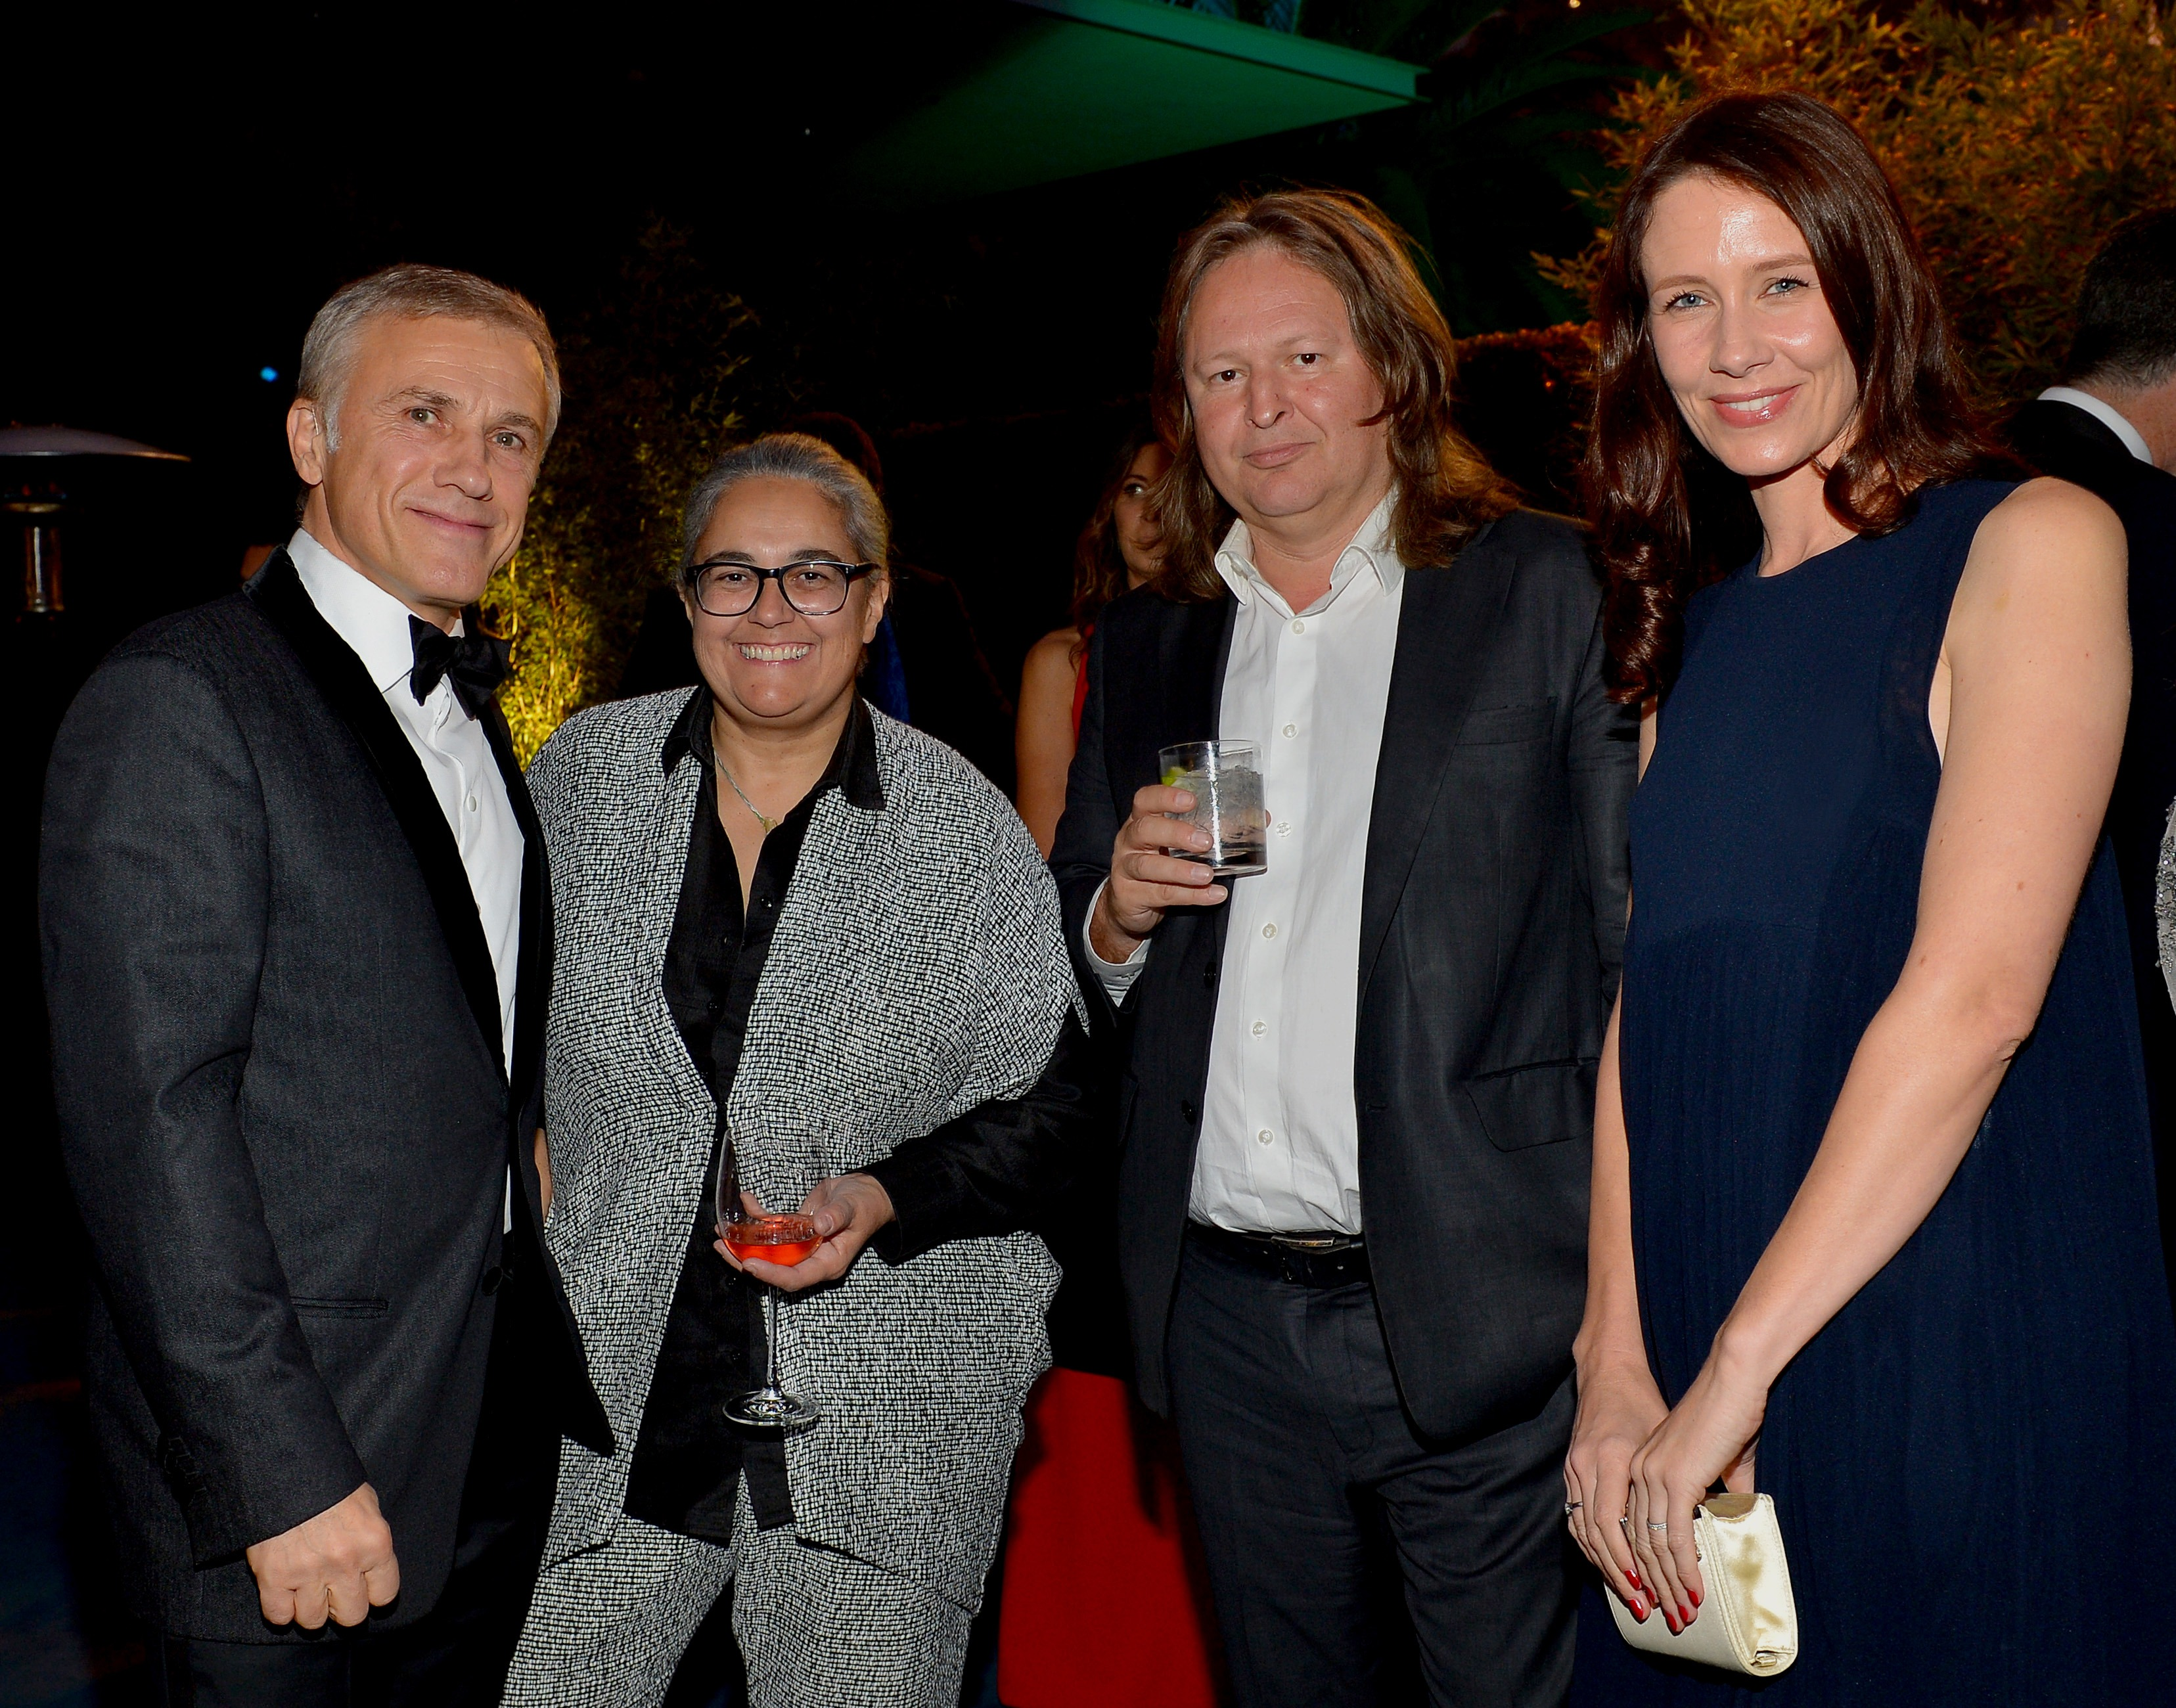 Christoph Waltz, artist Tacita Dean, artist Mathew Hale, and Nana Bahlmann, photo by Donato Sardella/Getty Images for LACMA